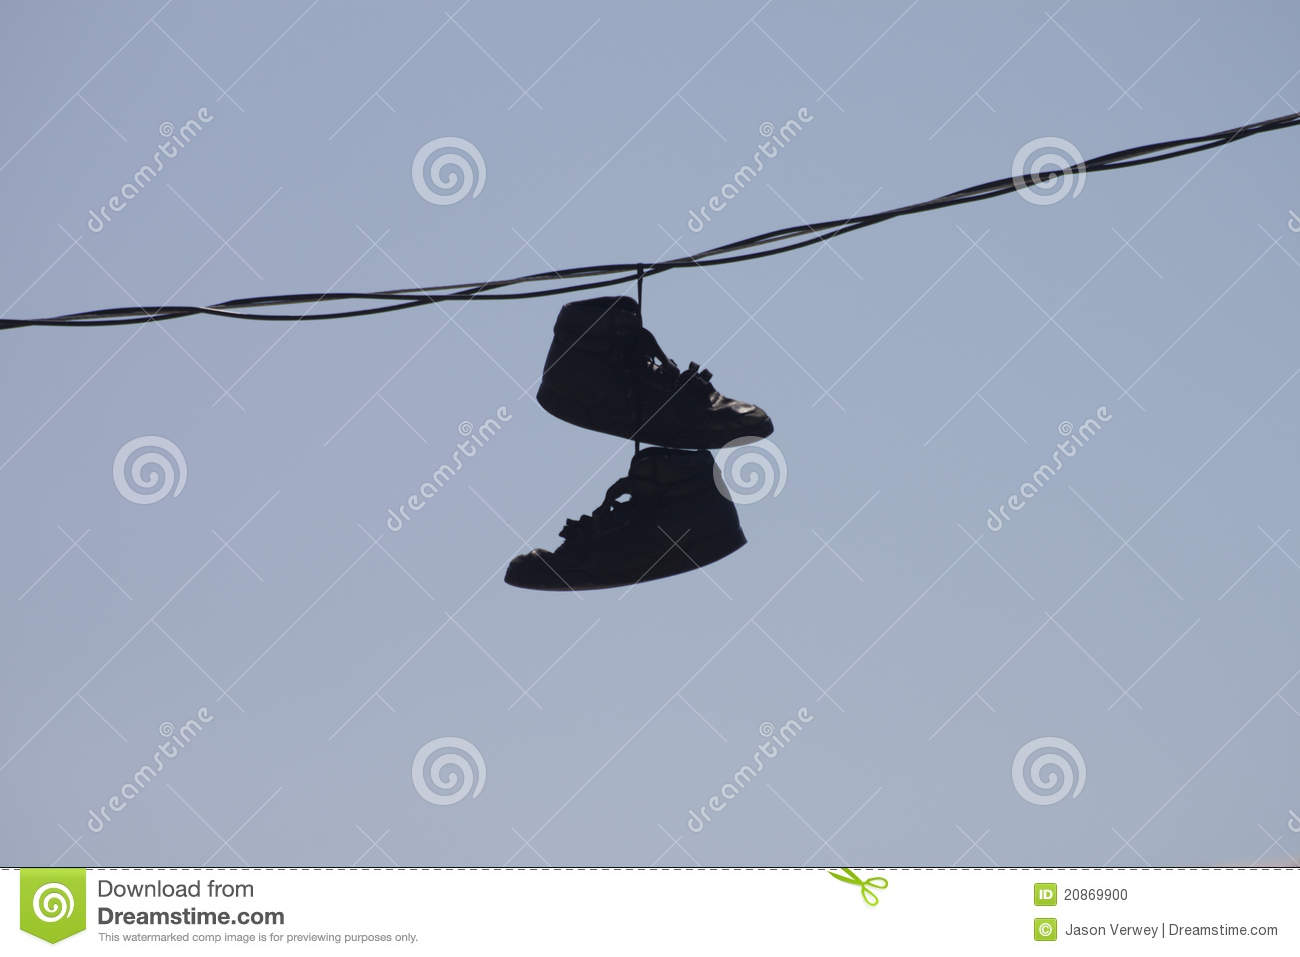 Hanging Photos On Wire shoes hanging on wire stock photo - image: 20869900